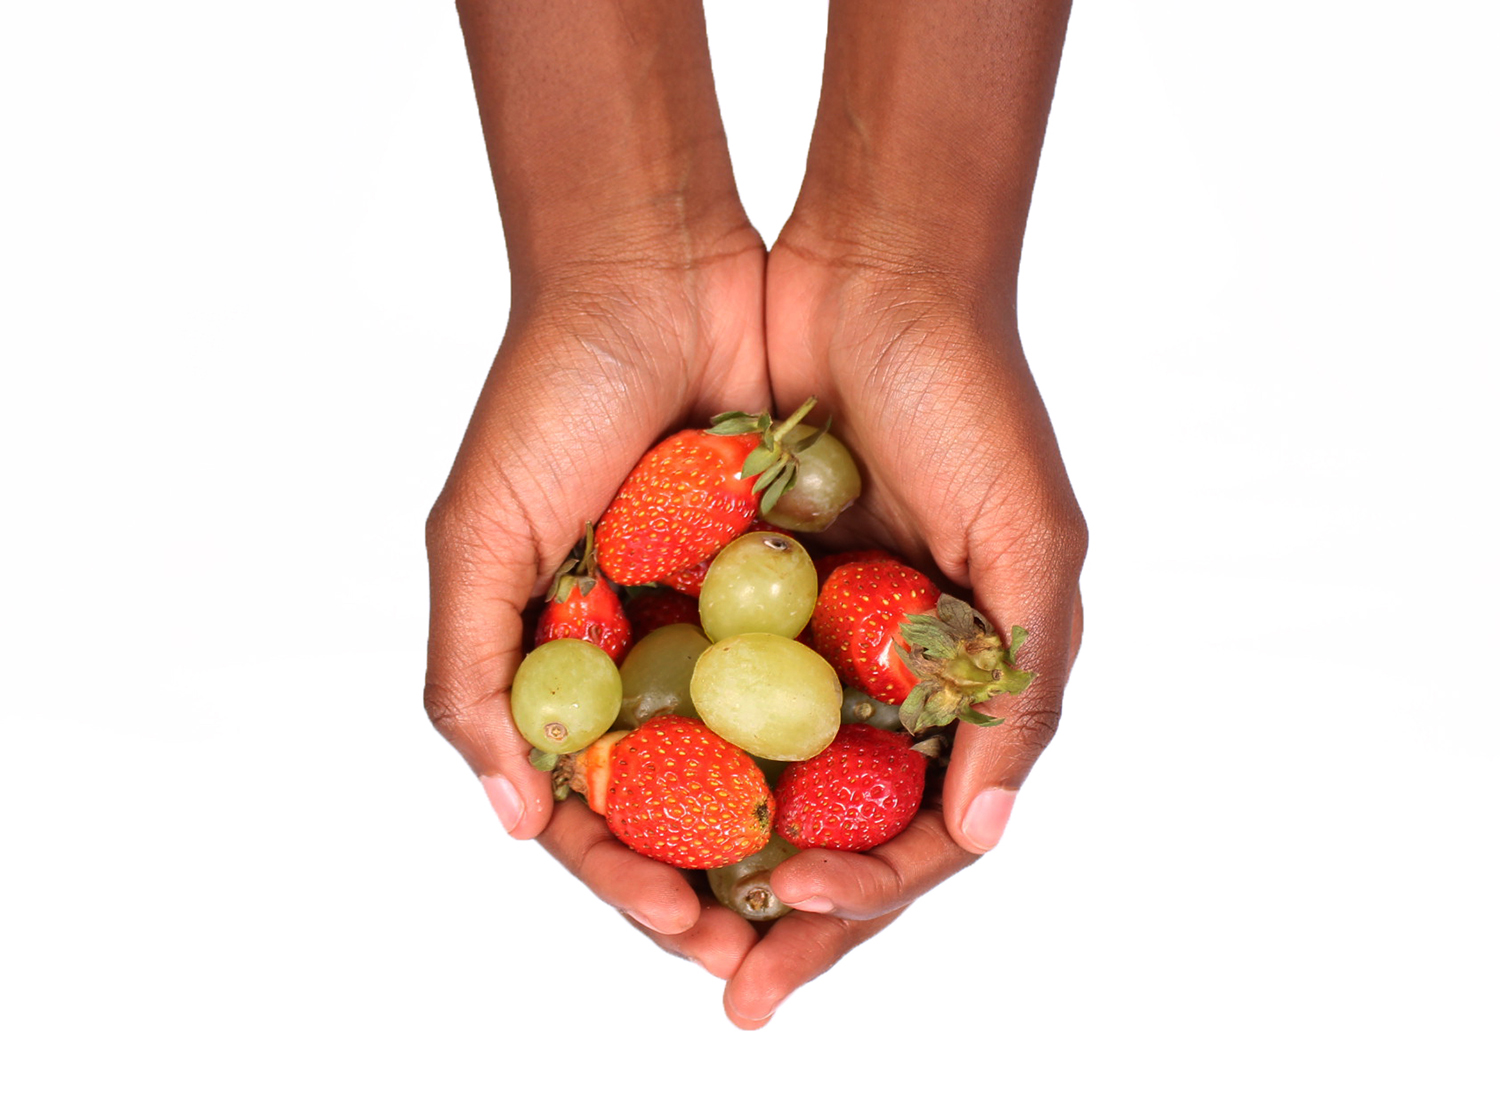 Hands holding strawberries and green grapes